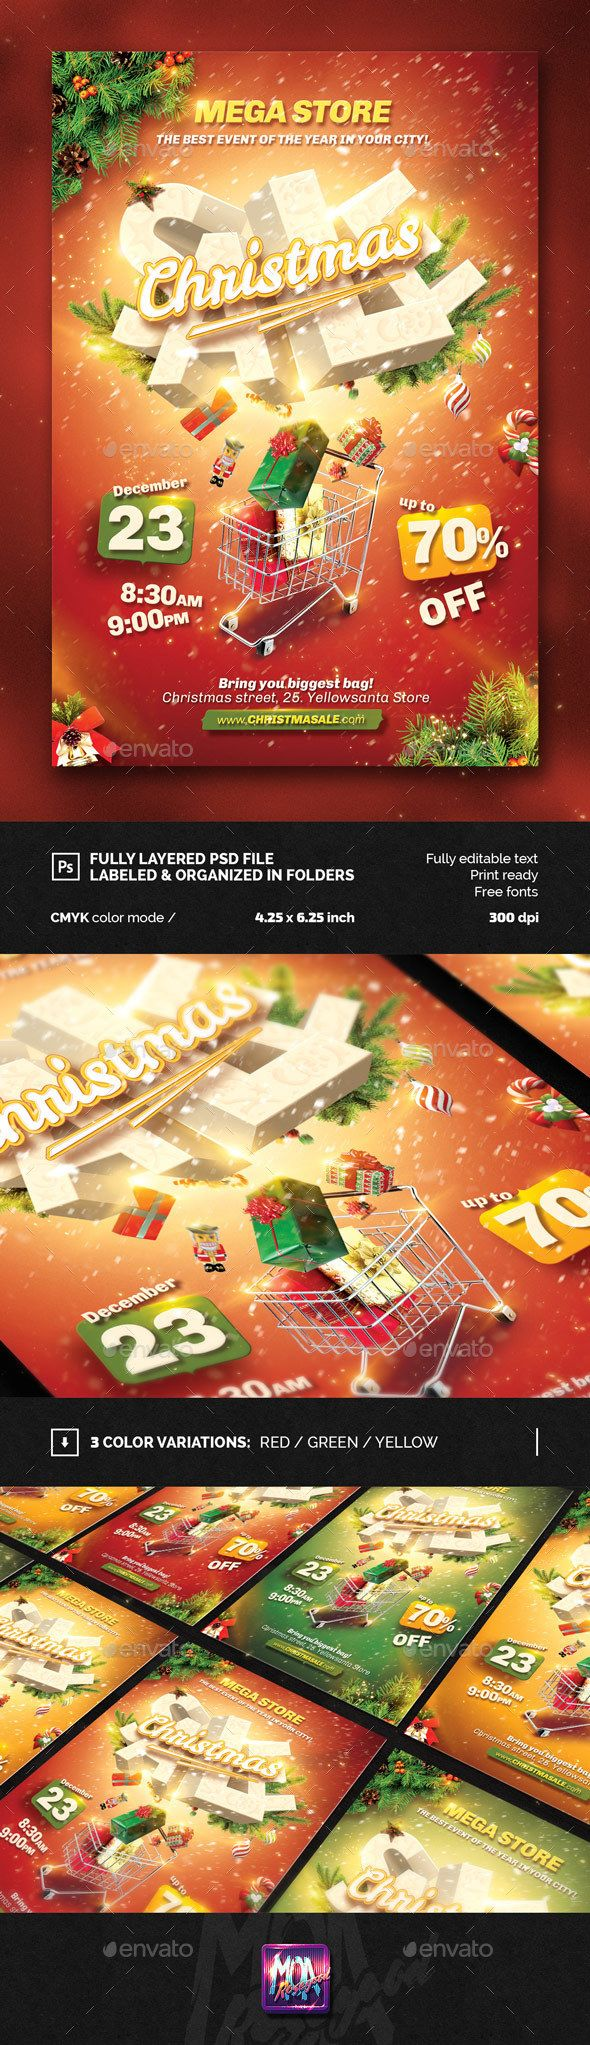 Christmas Sale Flyer Template PSD #design Download: http://graphicriver.net/item/christmas-sale-flyer-template/13830525?ref=ksioks